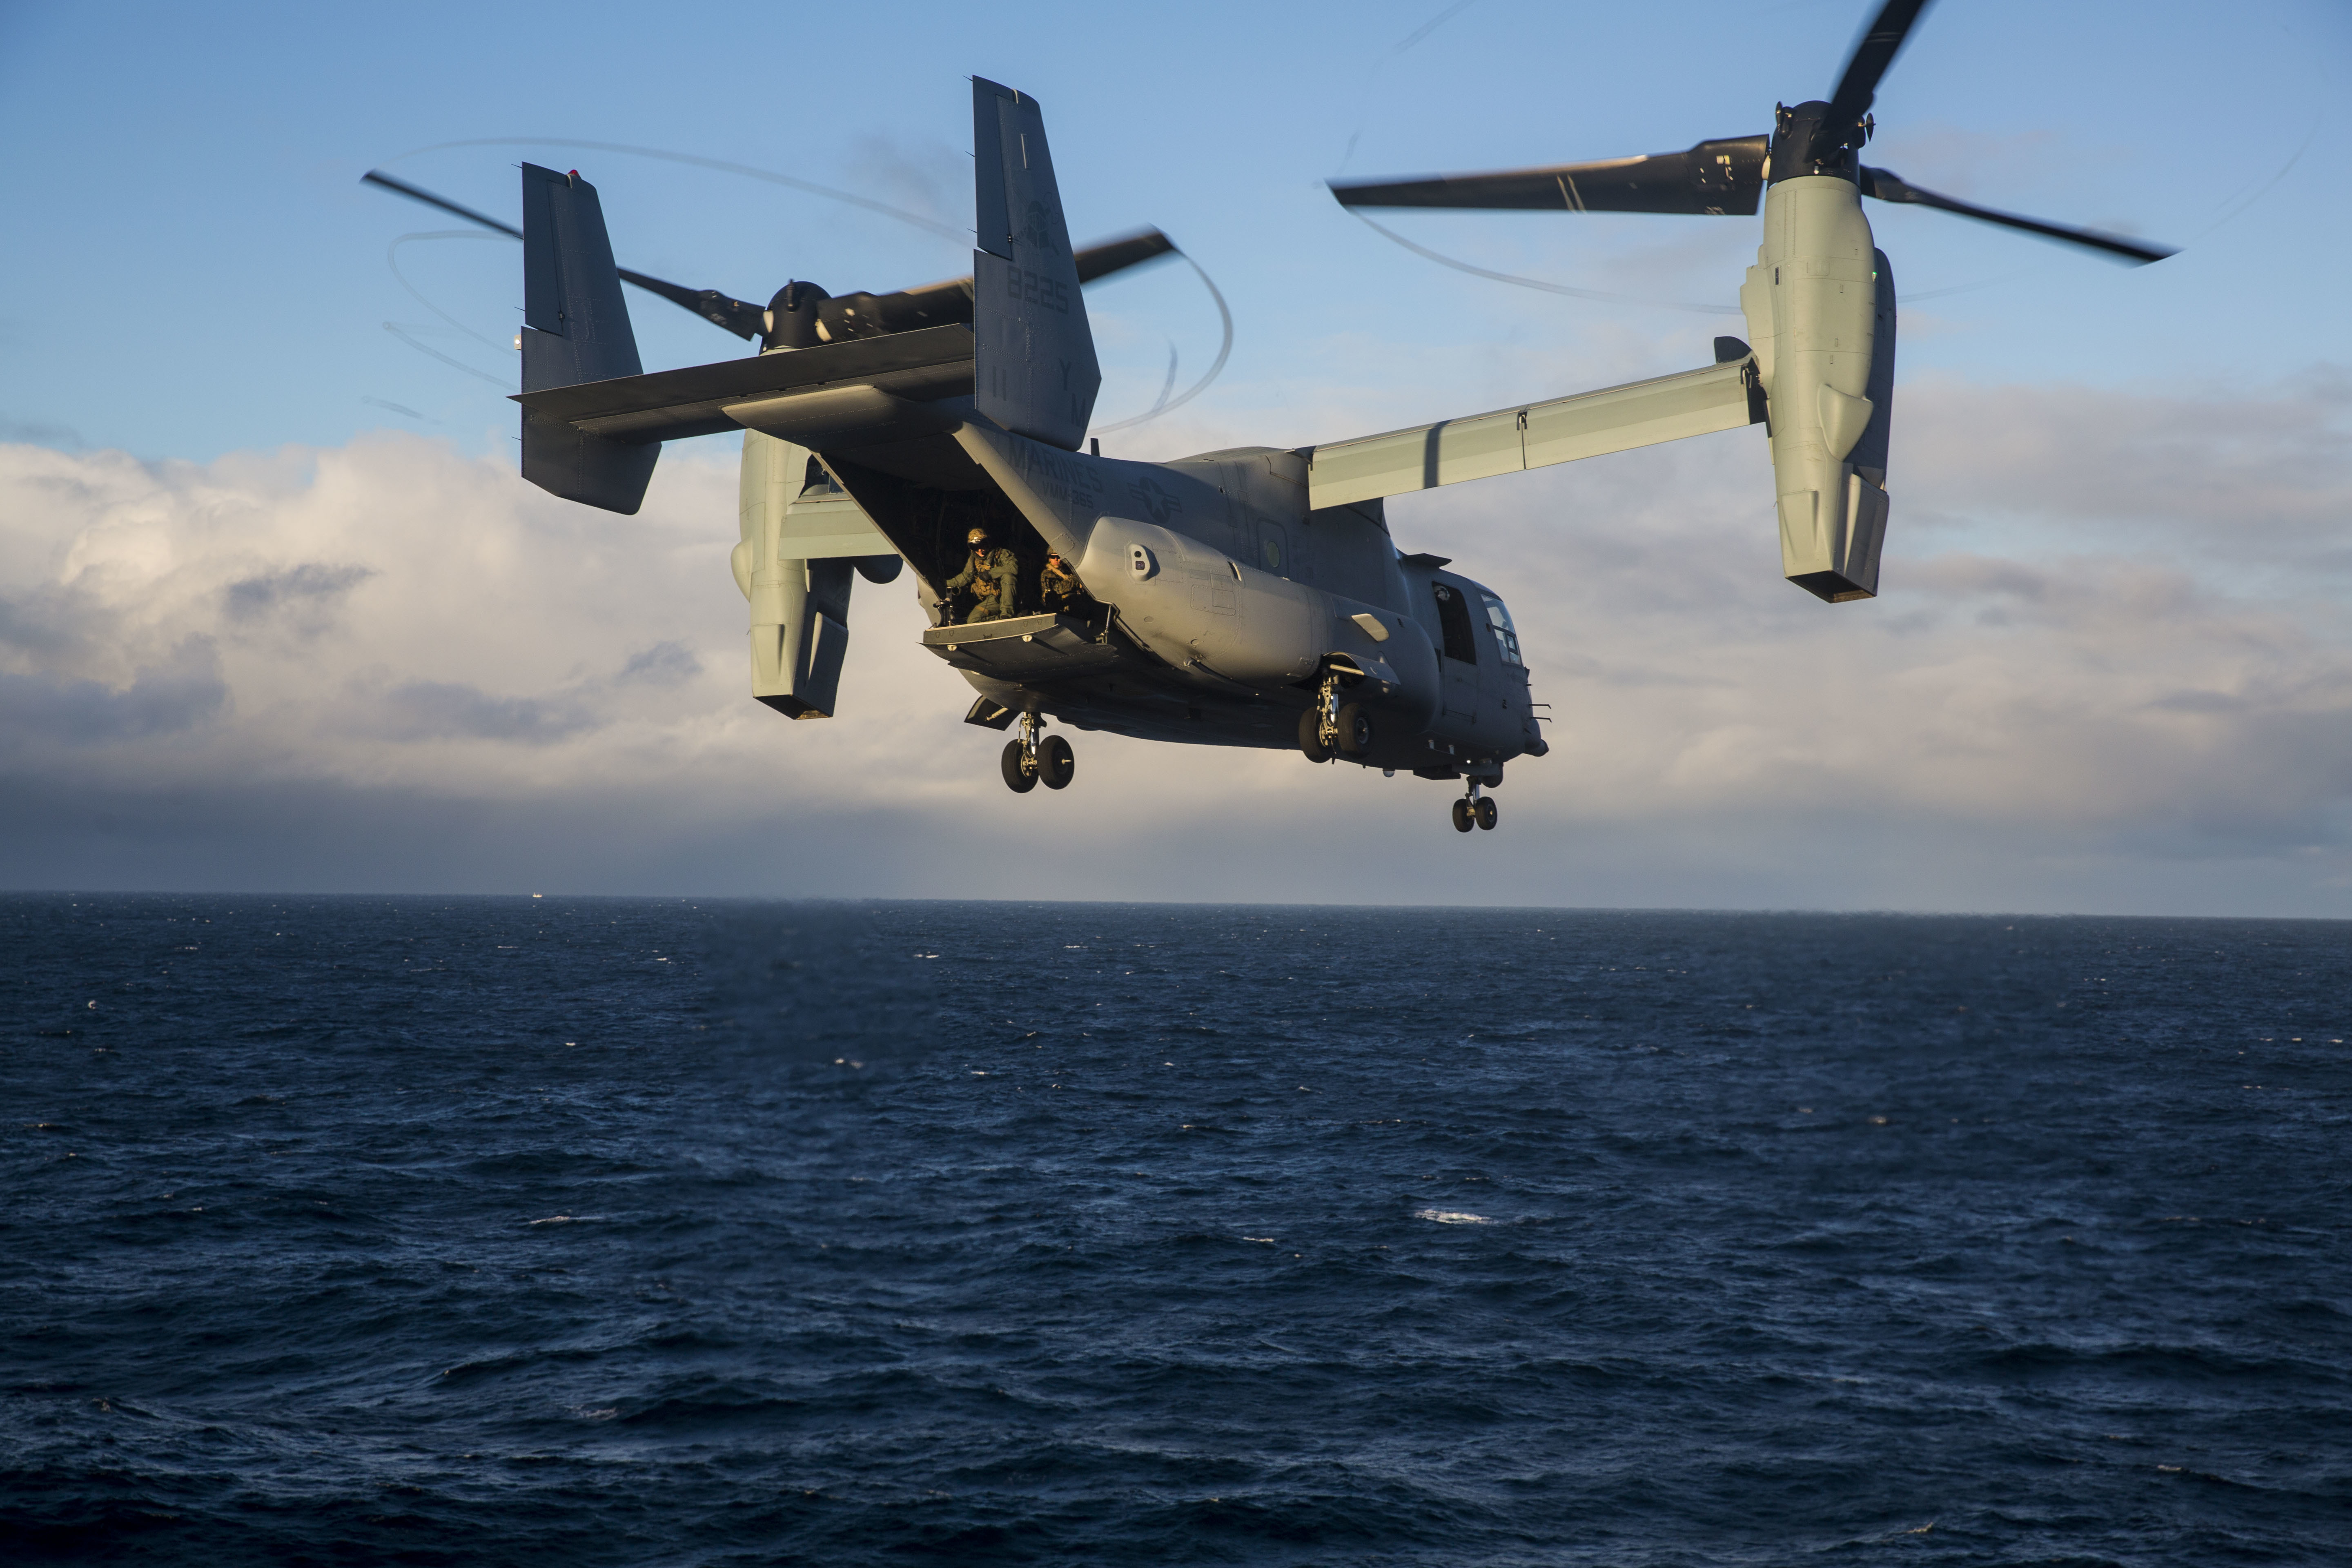 A V-22 Osprey departs from USS Iwo Jima (LHD 7) while conducting an air assault in Icelandic terrain Oct. 17. Iceland's unique terrain and climate allows for Marines to be better prepared and rapidly deploy in support of NATO Allies and partners. (U.S. Marine Corps photo by Lance Cpl. Margaret Gale)